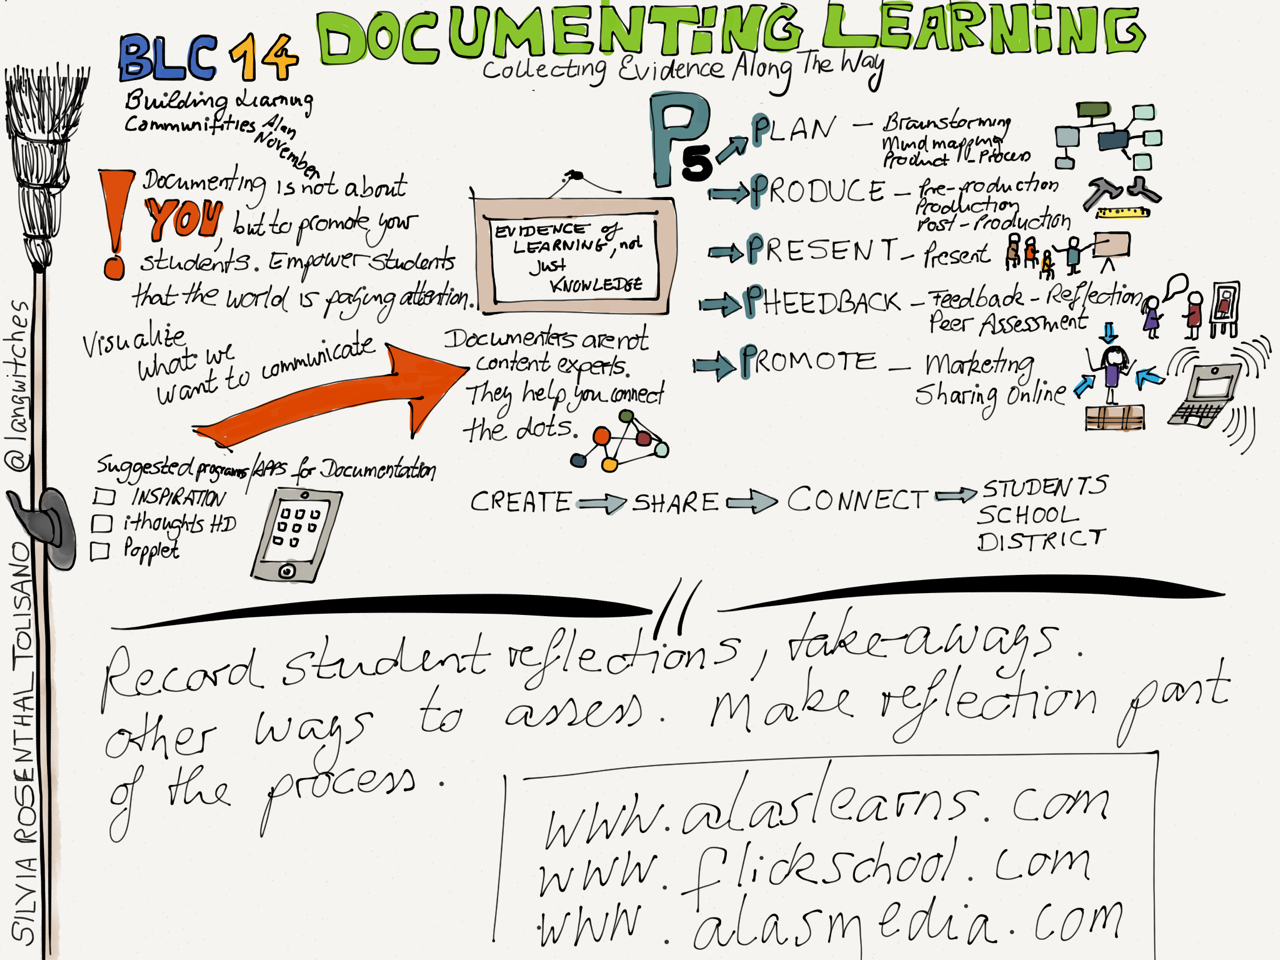 documenting-for-learning-torres